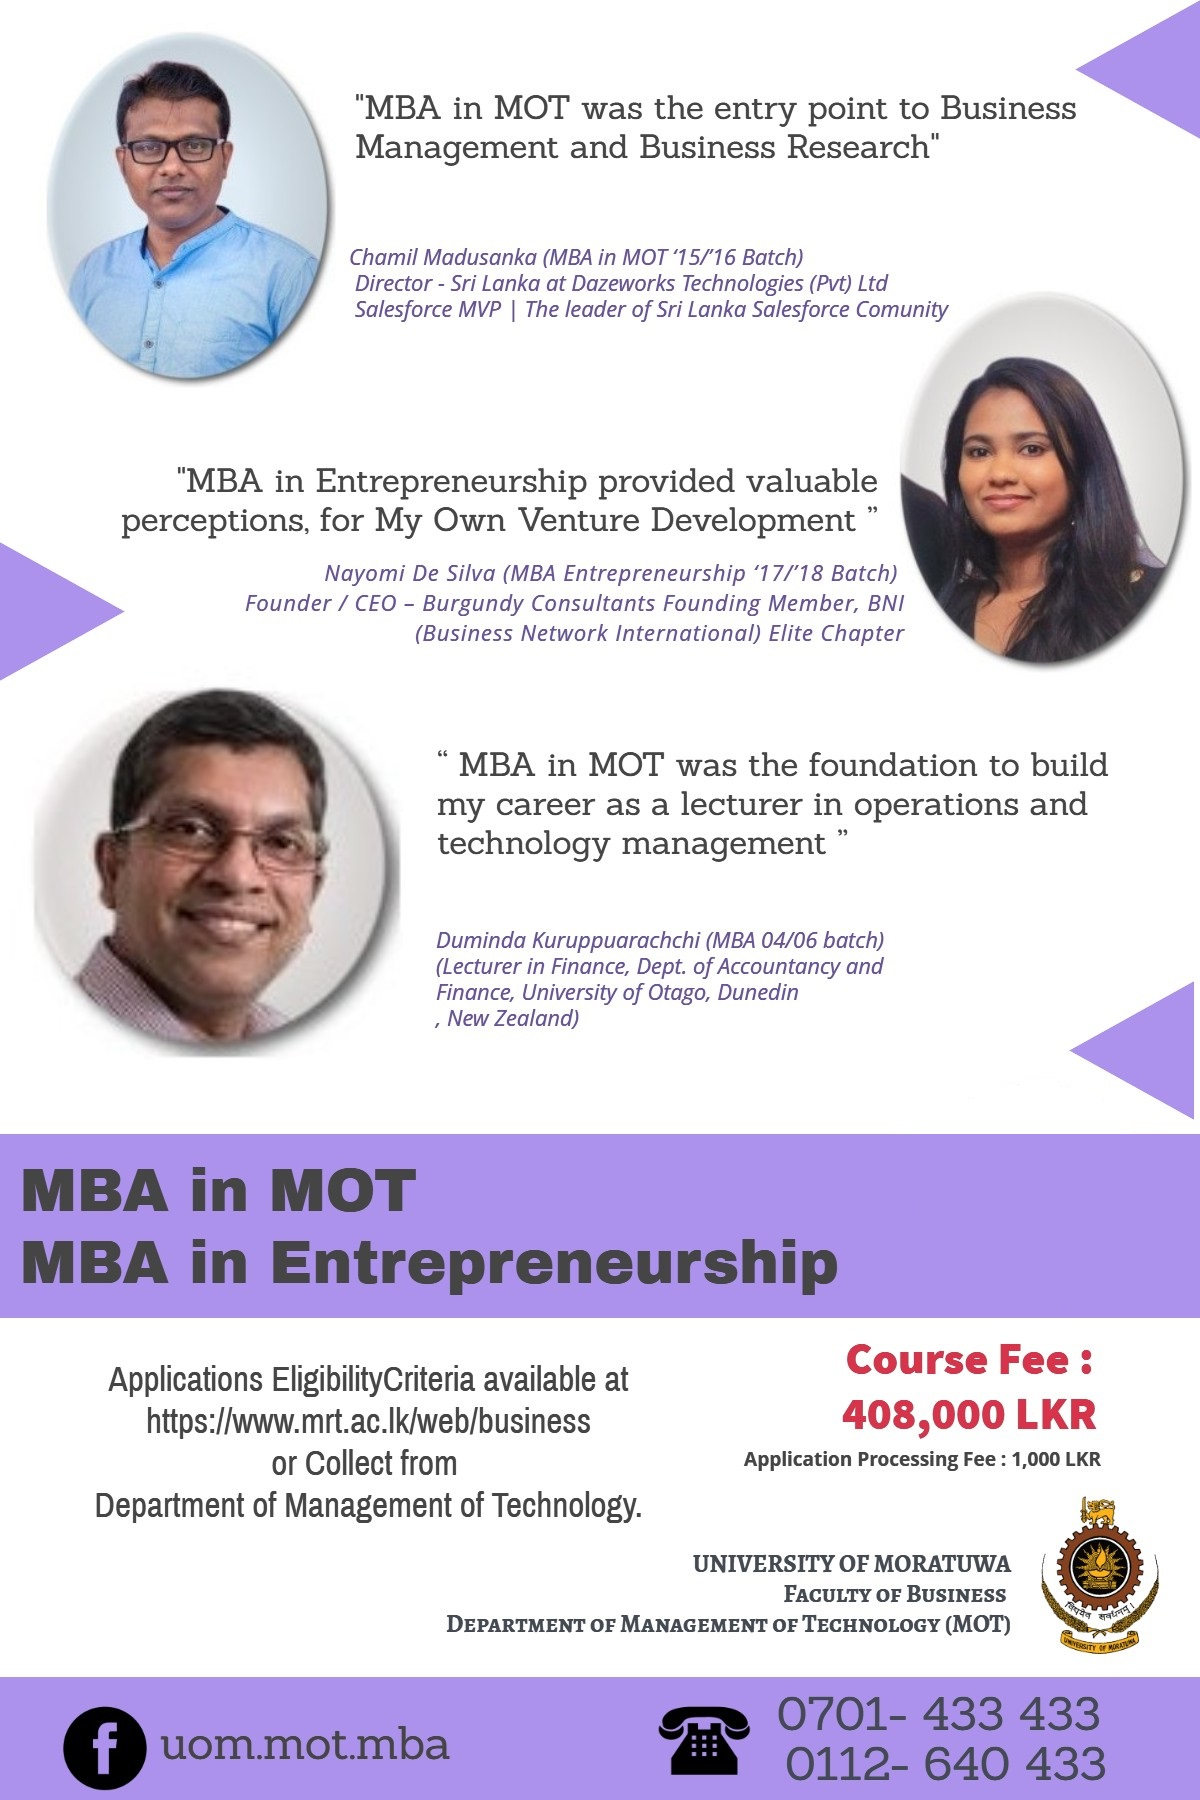 MBA in MOT and Entrepreneurship